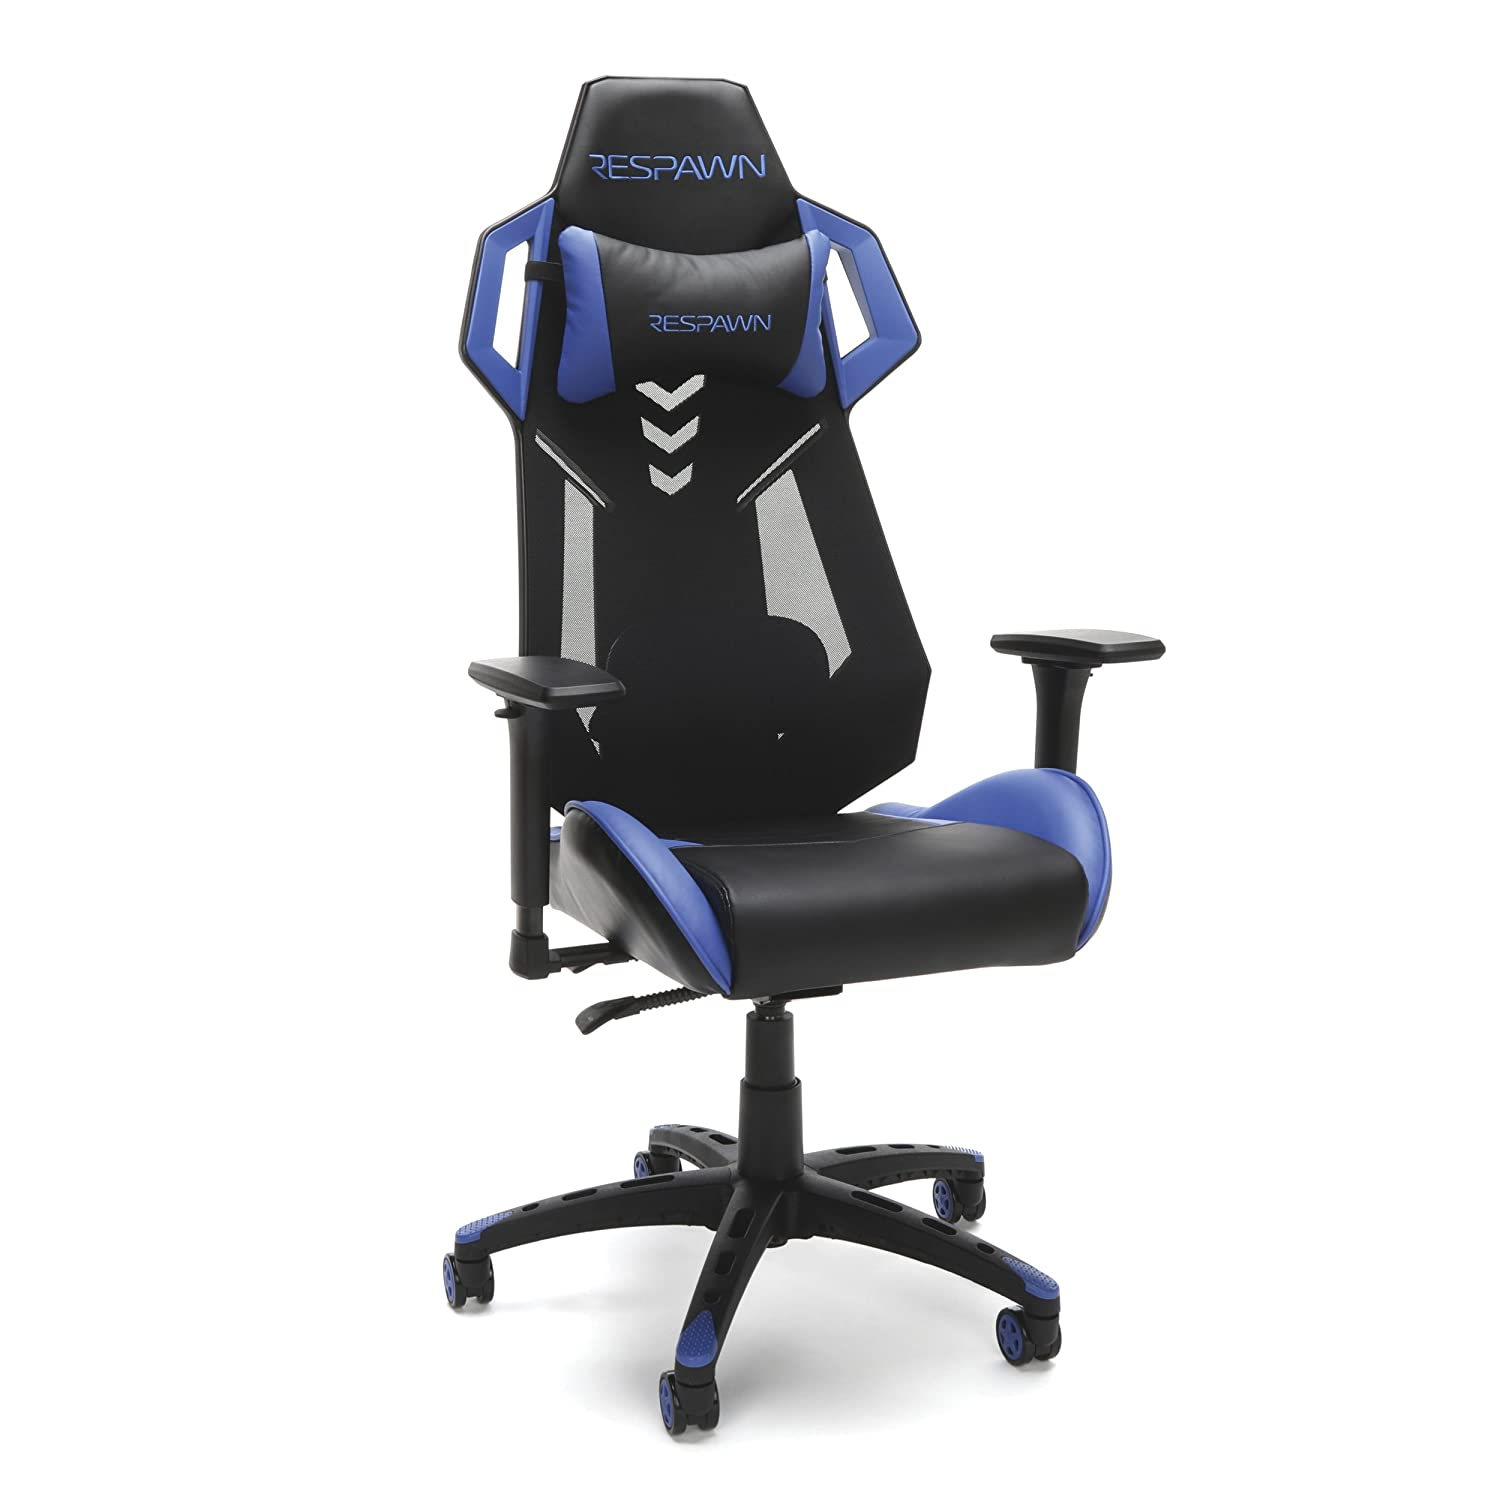 Terrific Respawn 200 Racing Style Gaming Chair In Blue Rsp 200 Blu Short Links Chair Design For Home Short Linksinfo